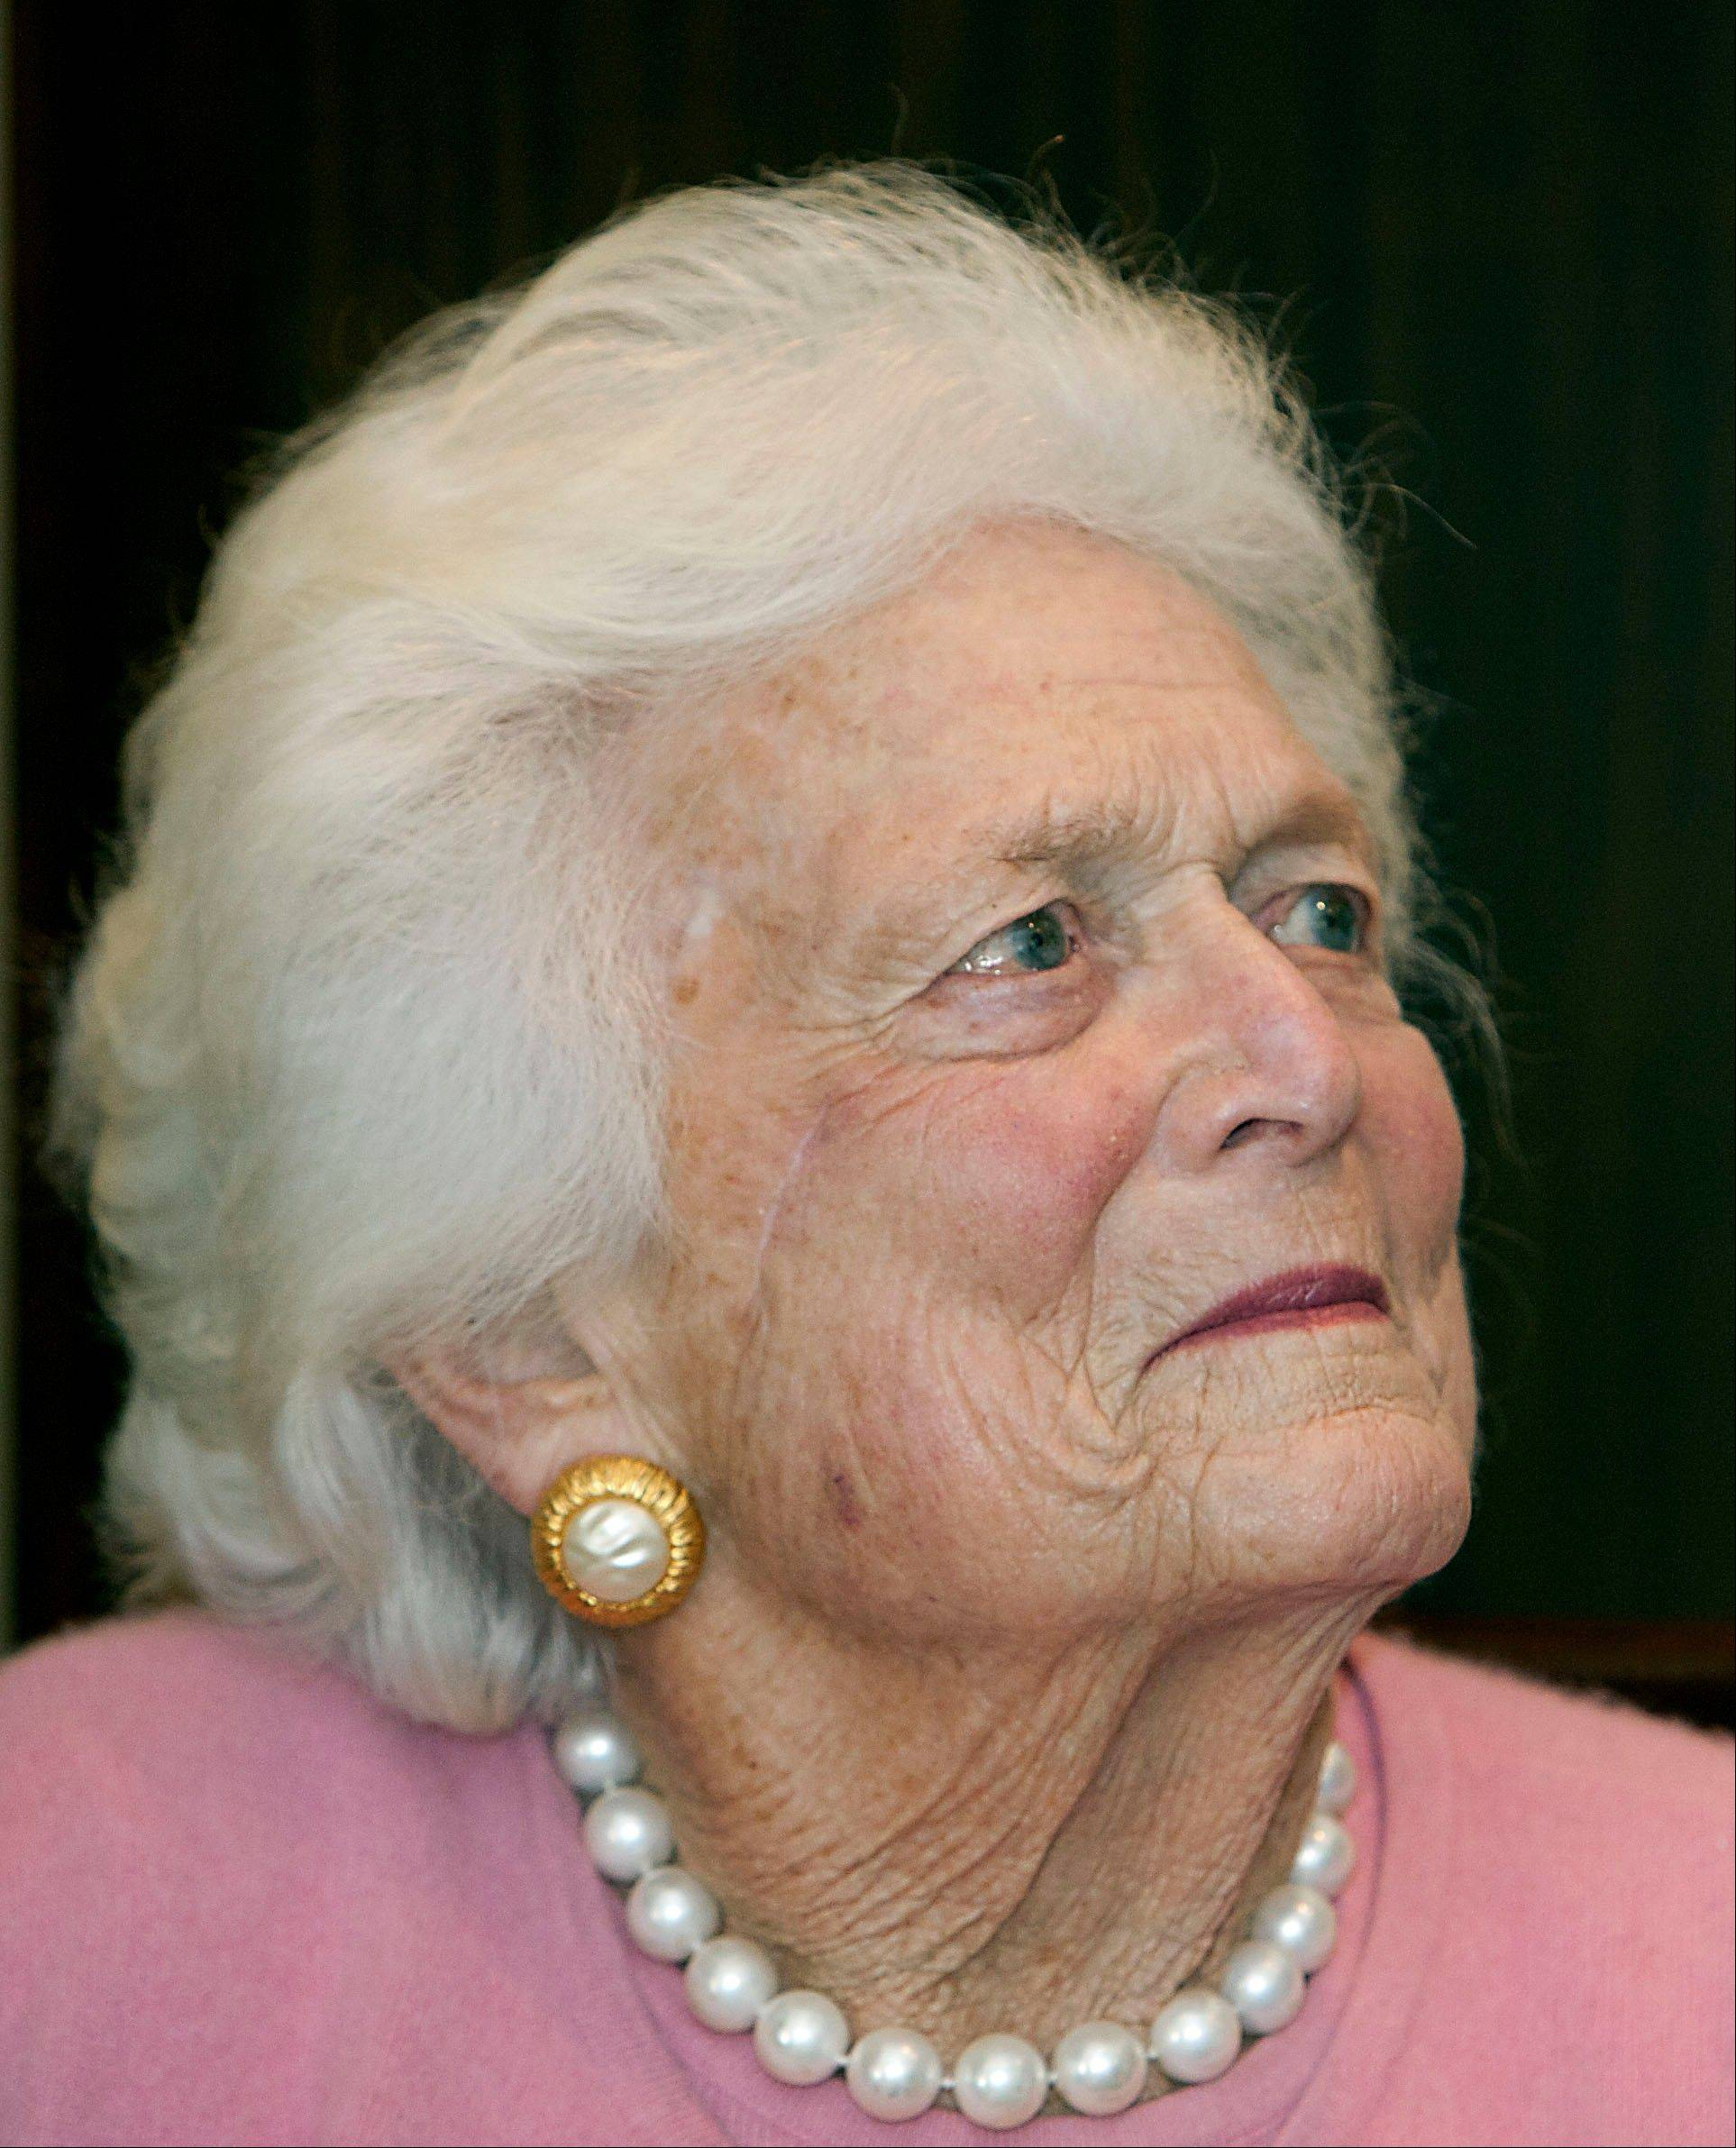 Associated Press/Houston Chronicle, James NielsenFormer first Lady Barbara Bush looks on during a ceremony on Dec. 23 at President Bush's office in Houston. She has been hospitalized in Houston with a respiratory-related issue. A statement Tuesday night from the office of her husband, former President George H.W. Bush, said she was admitted to Houston Methodist Hospital on Monday.